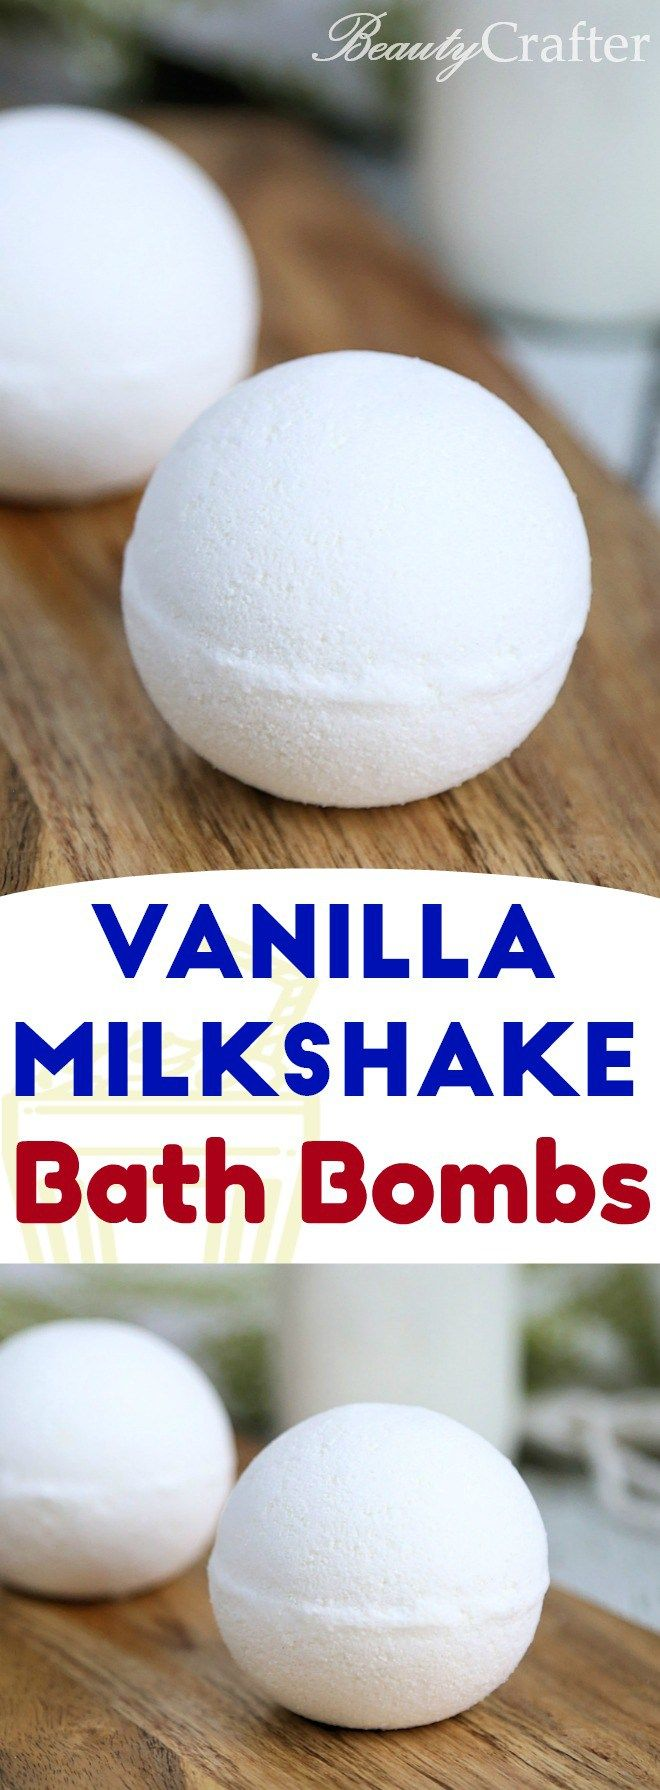 Love milk baths, then why not enjoy some milk bath bombs with this easy DIY milk bath bomb recipe! I am actually disappointed I waited this long to try powdered milk in my bath bombs.  It is something I have been meaning to do for awhile, but I kept forgetting to pick up the powdered milk to make them with. Since then, I have been quite pleased with the results of making milk bath bombs. Here is the simple milk bath bomb recipe I have been making for my daughter. Milk Bath Bombs: Benefits…